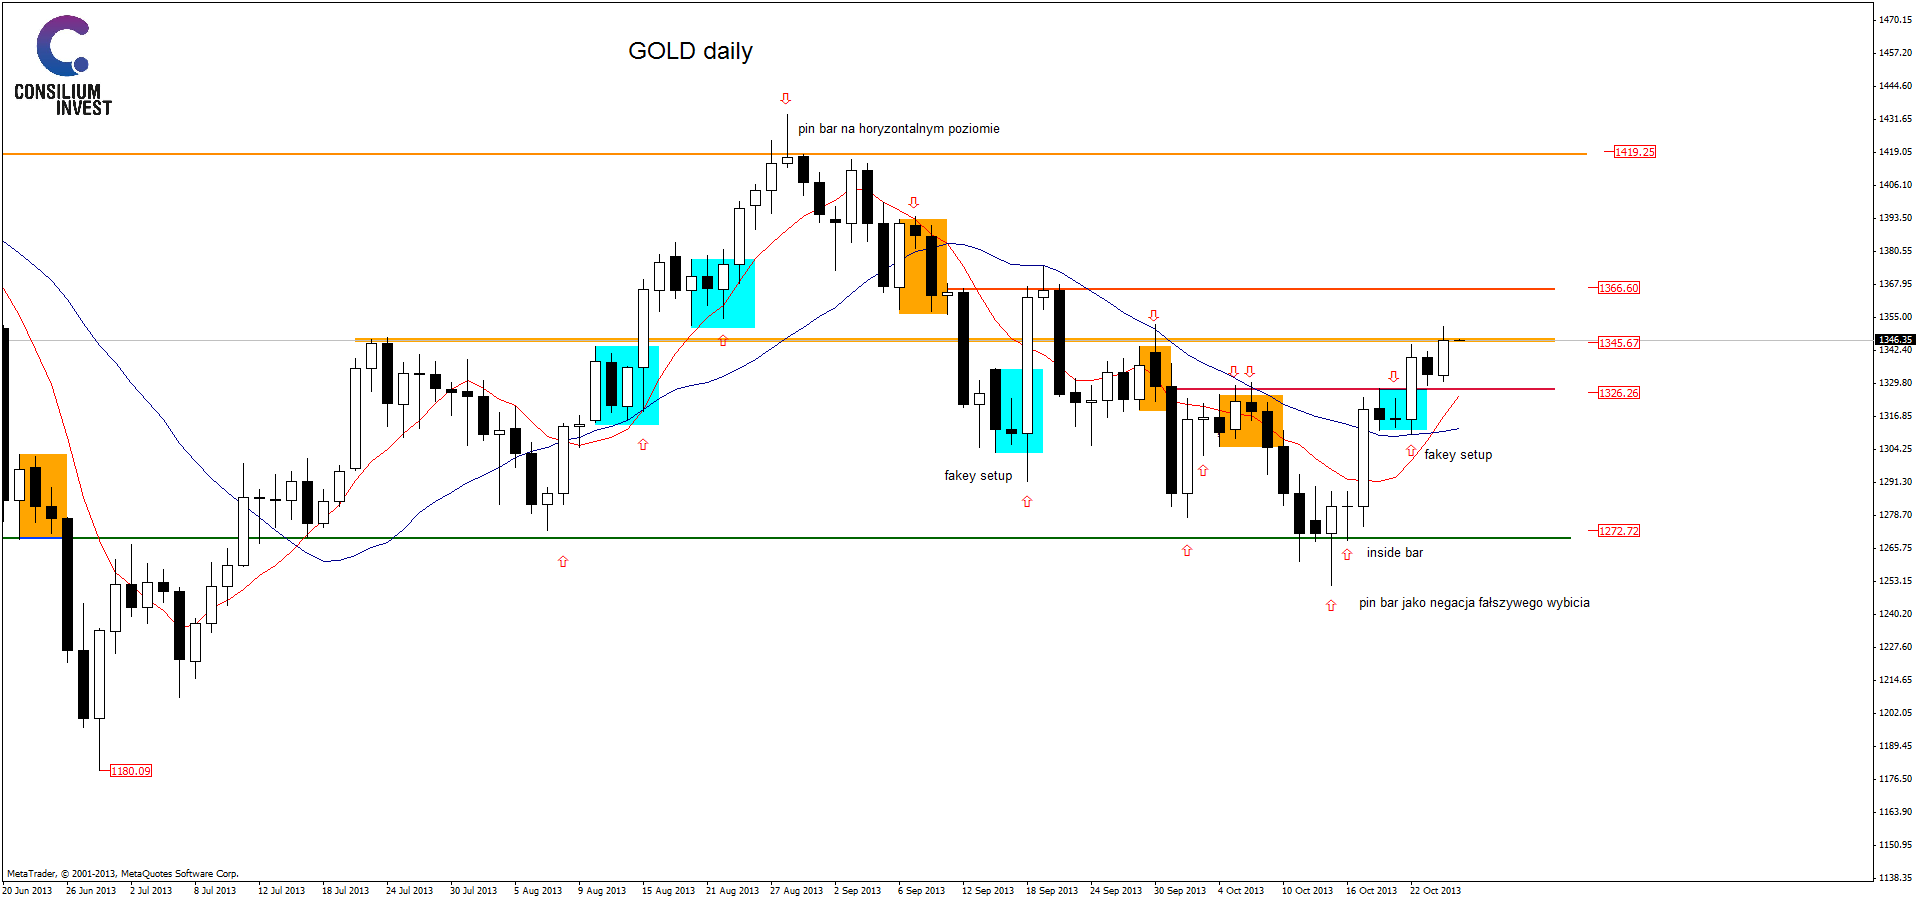 golddaily25_10